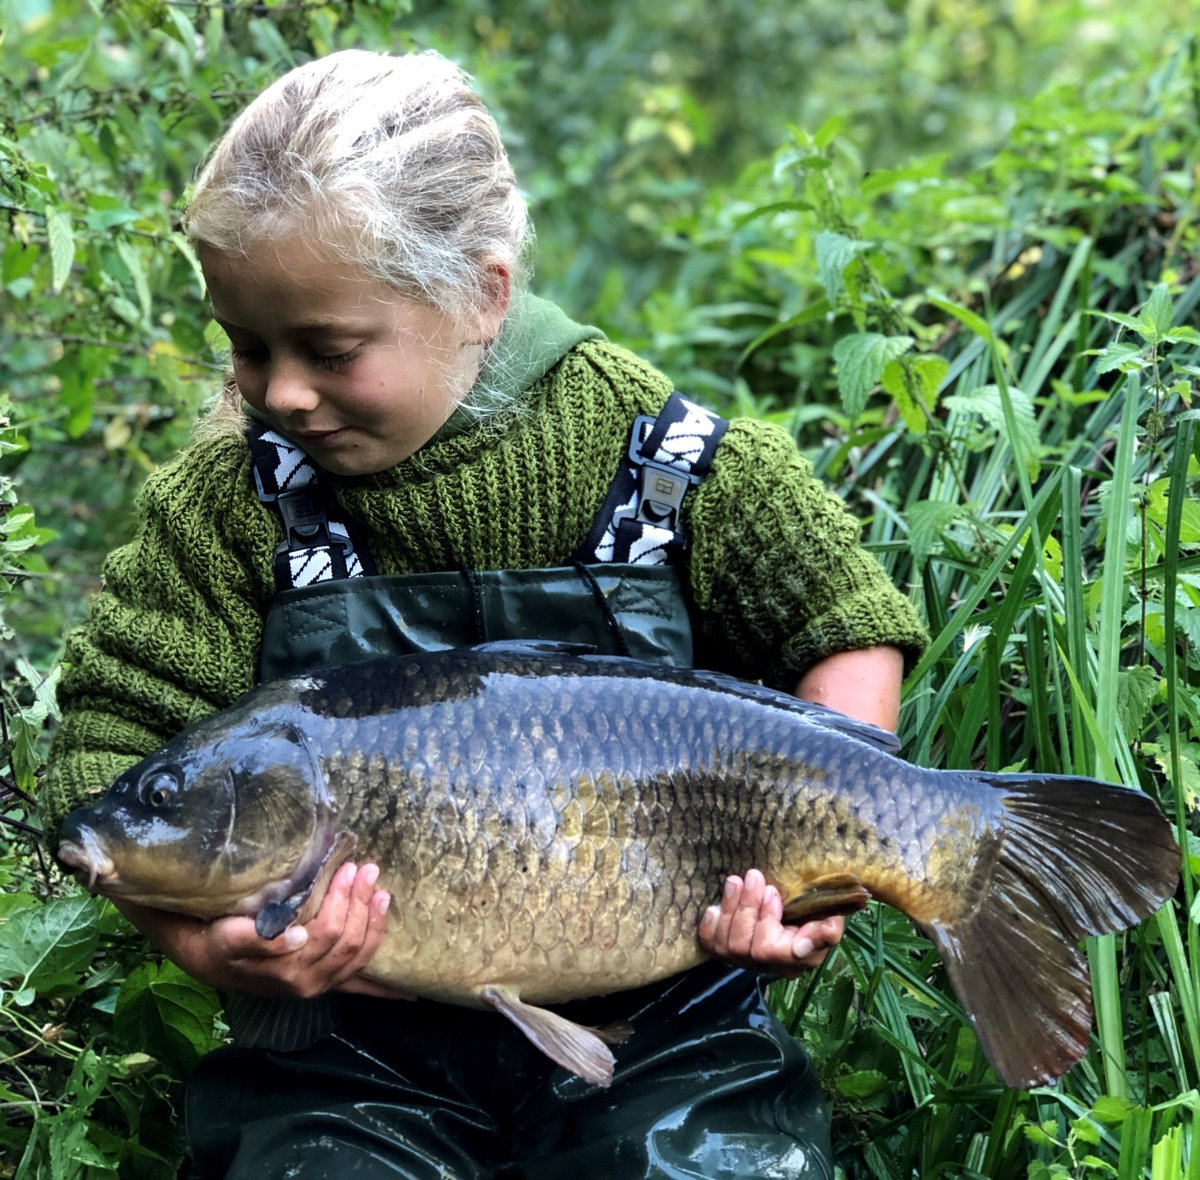 Sophie's river common caught Sunday morning, a <b>Beau</b>tiful little carp. Well done Sophie. #carp